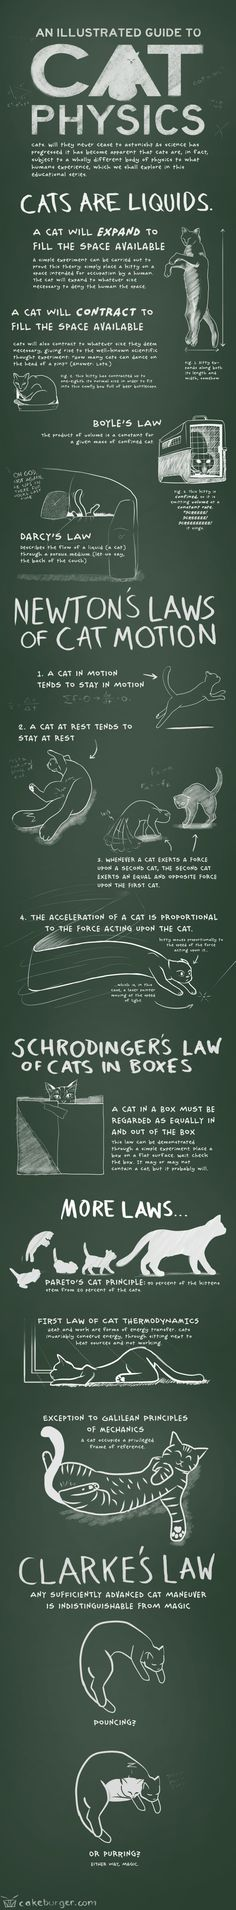 Are you a cat-loving physics fiend?Then does Cakeburger have a comic for you!See the laws of physics in a whole new light thanks to the strange, weird, and wonderful way of the cat.Full story at Cakeburger via Presurfer.For the love of cats. What about Yours?  #relax